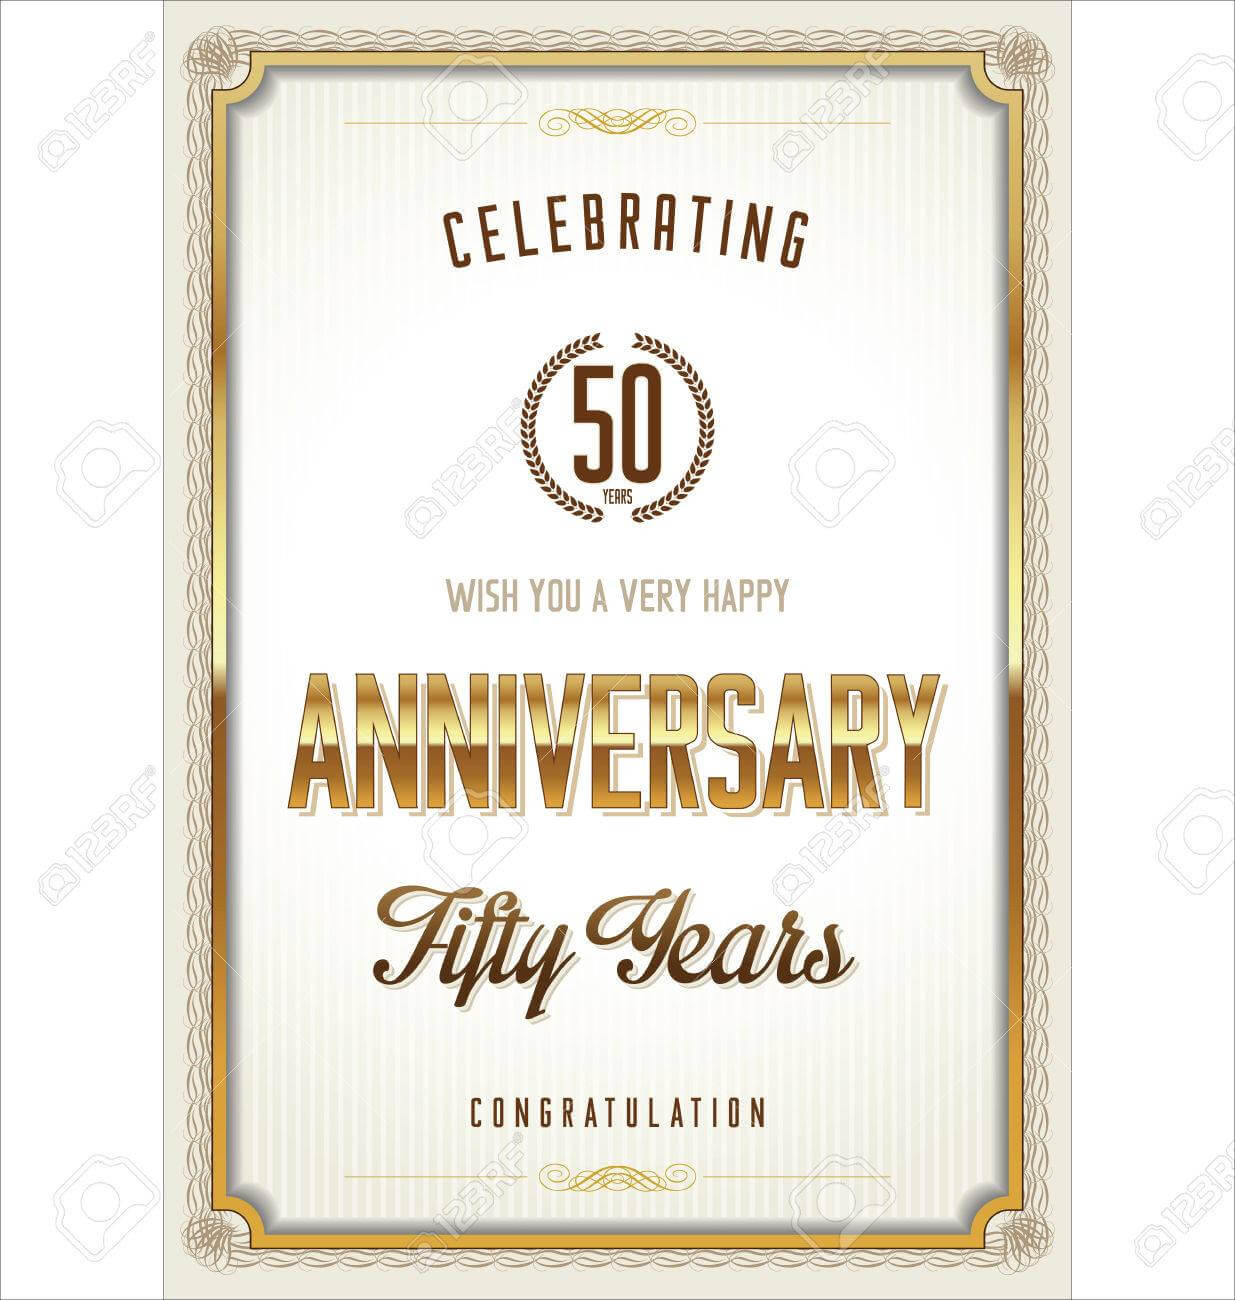 Anniversary Certificate Template intended for Anniversary Certificate Template Free